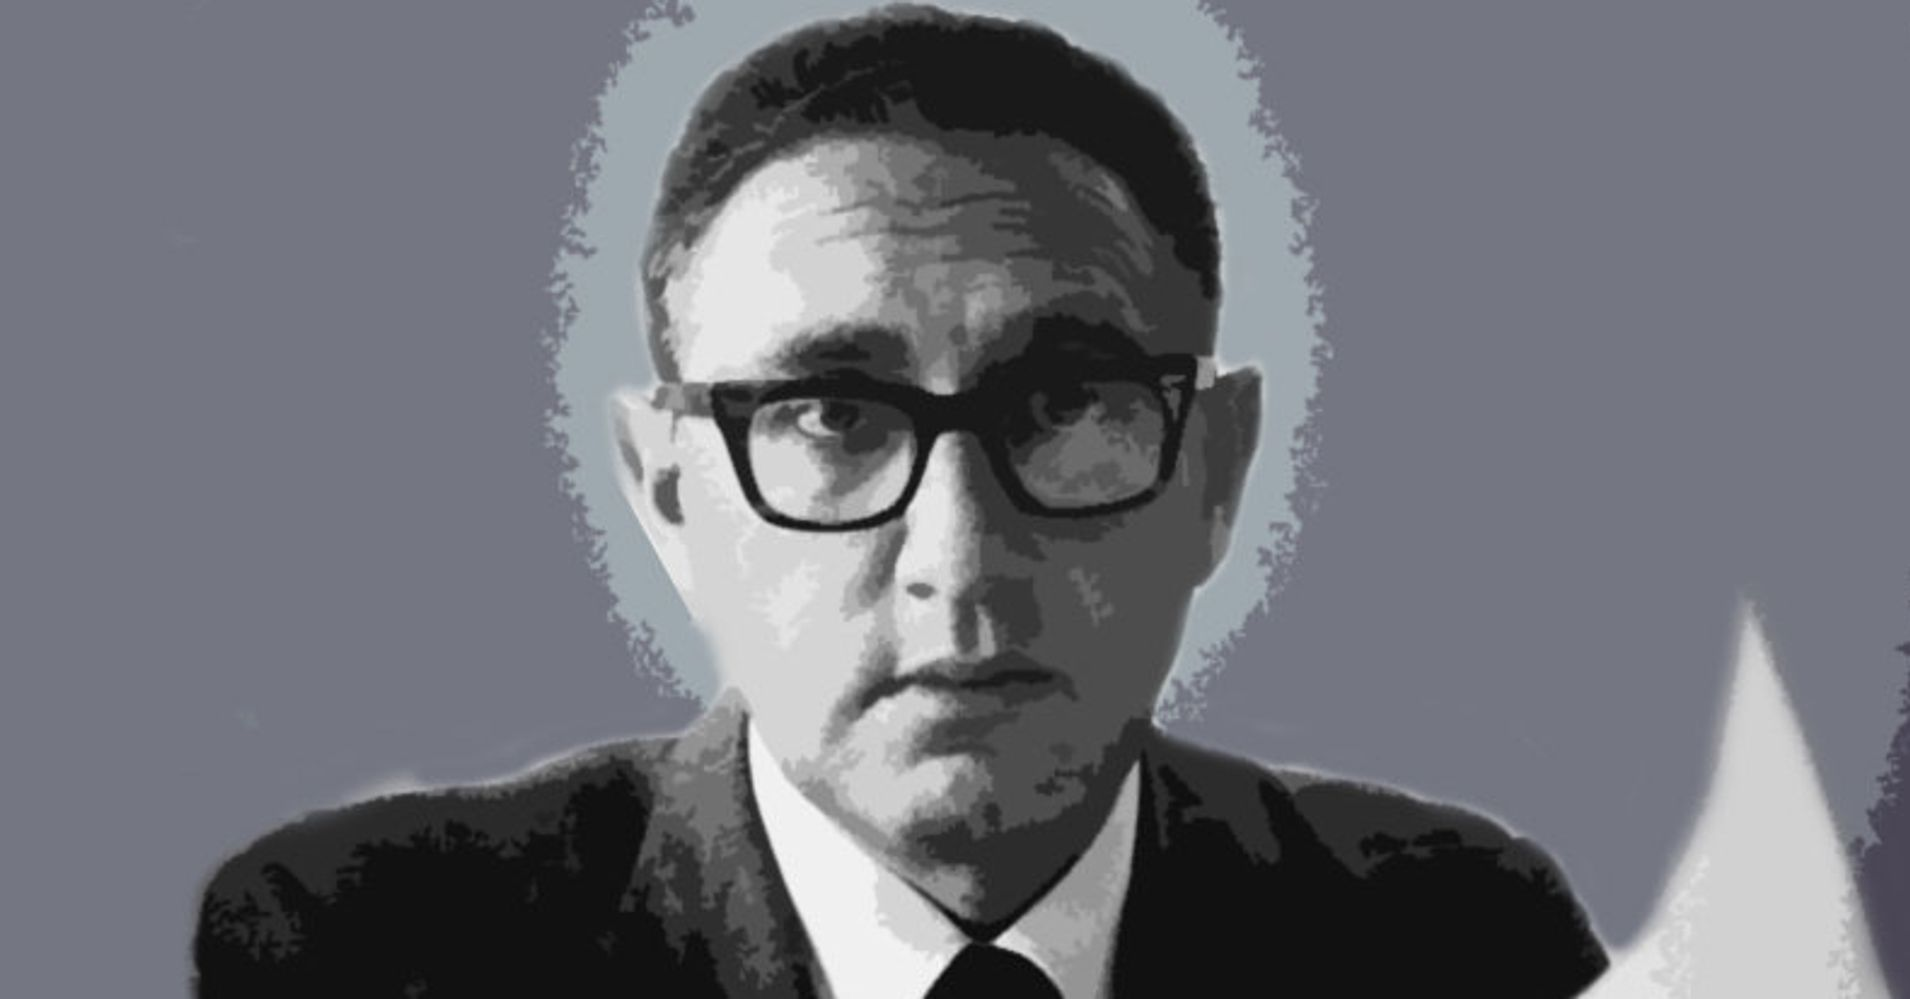 henry kissinger senior thesis A selection from henry kissinger's the meaning of history: reflections on spengler, toynbee and kant, 1950 the meaning of history was kissinger's senior honors.